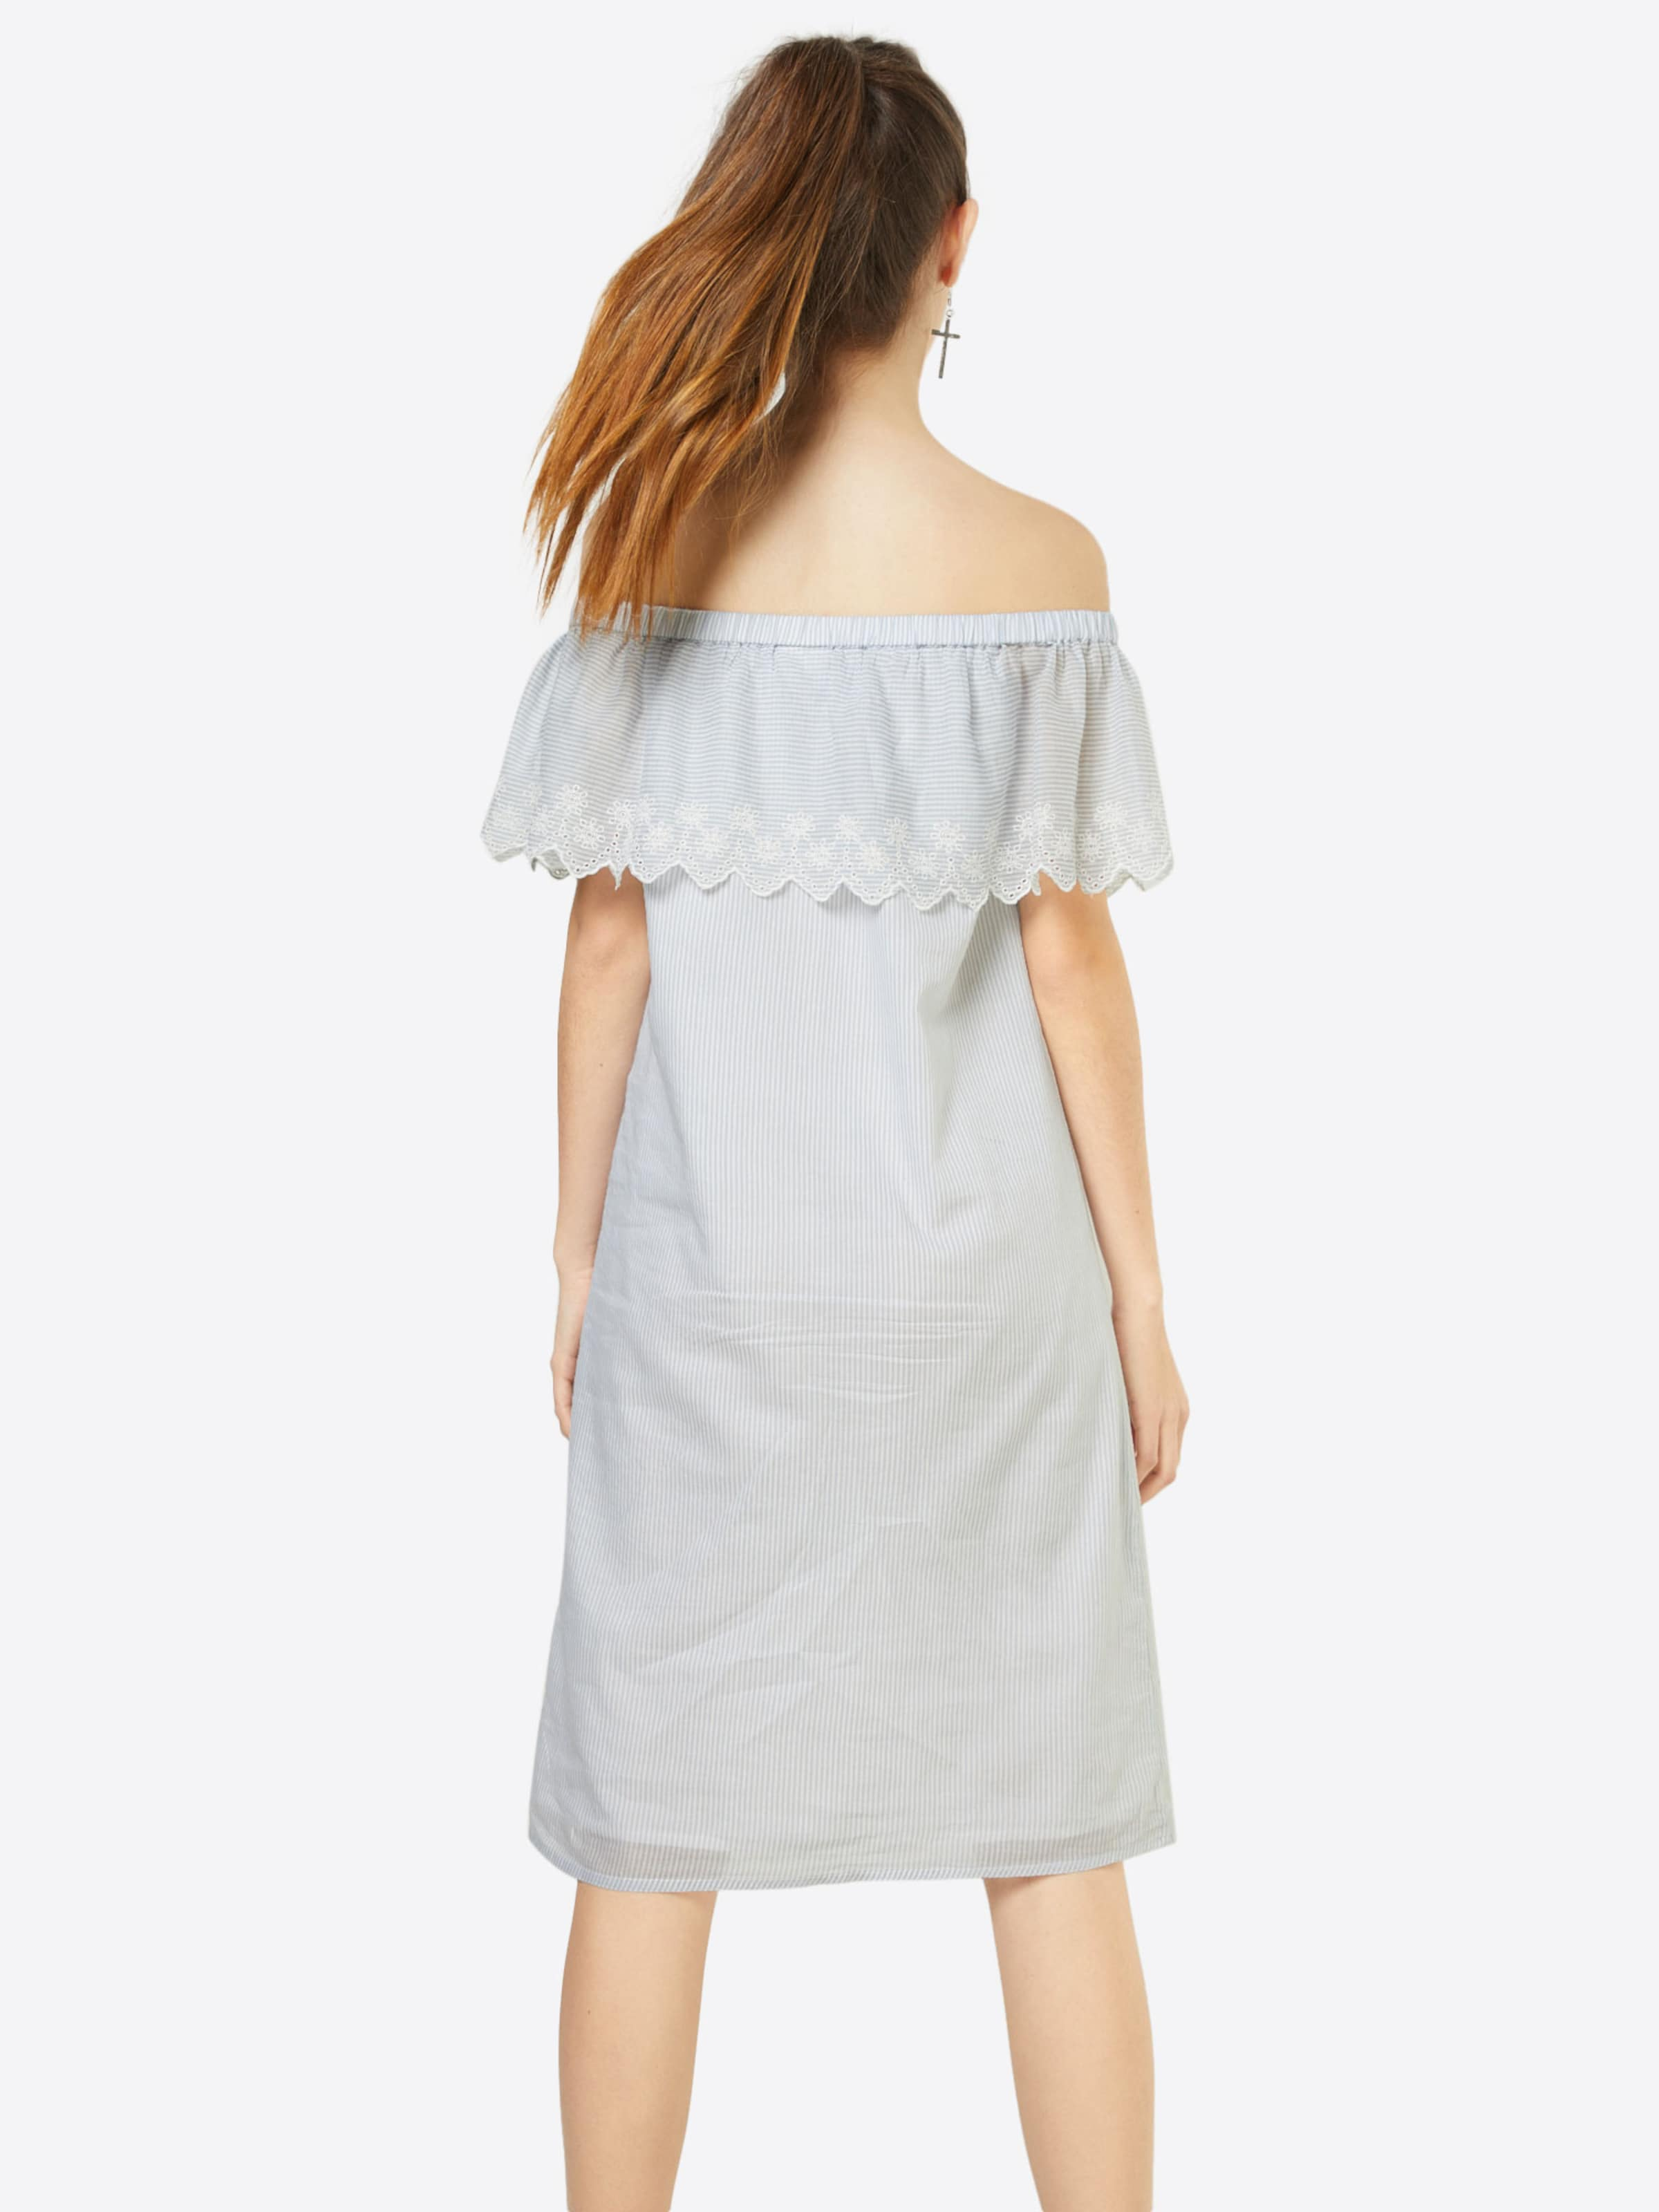 Vila D'été Clair 'vitipo Bleu Offshoulder Short Dress' En Robe 8wNOynPvm0